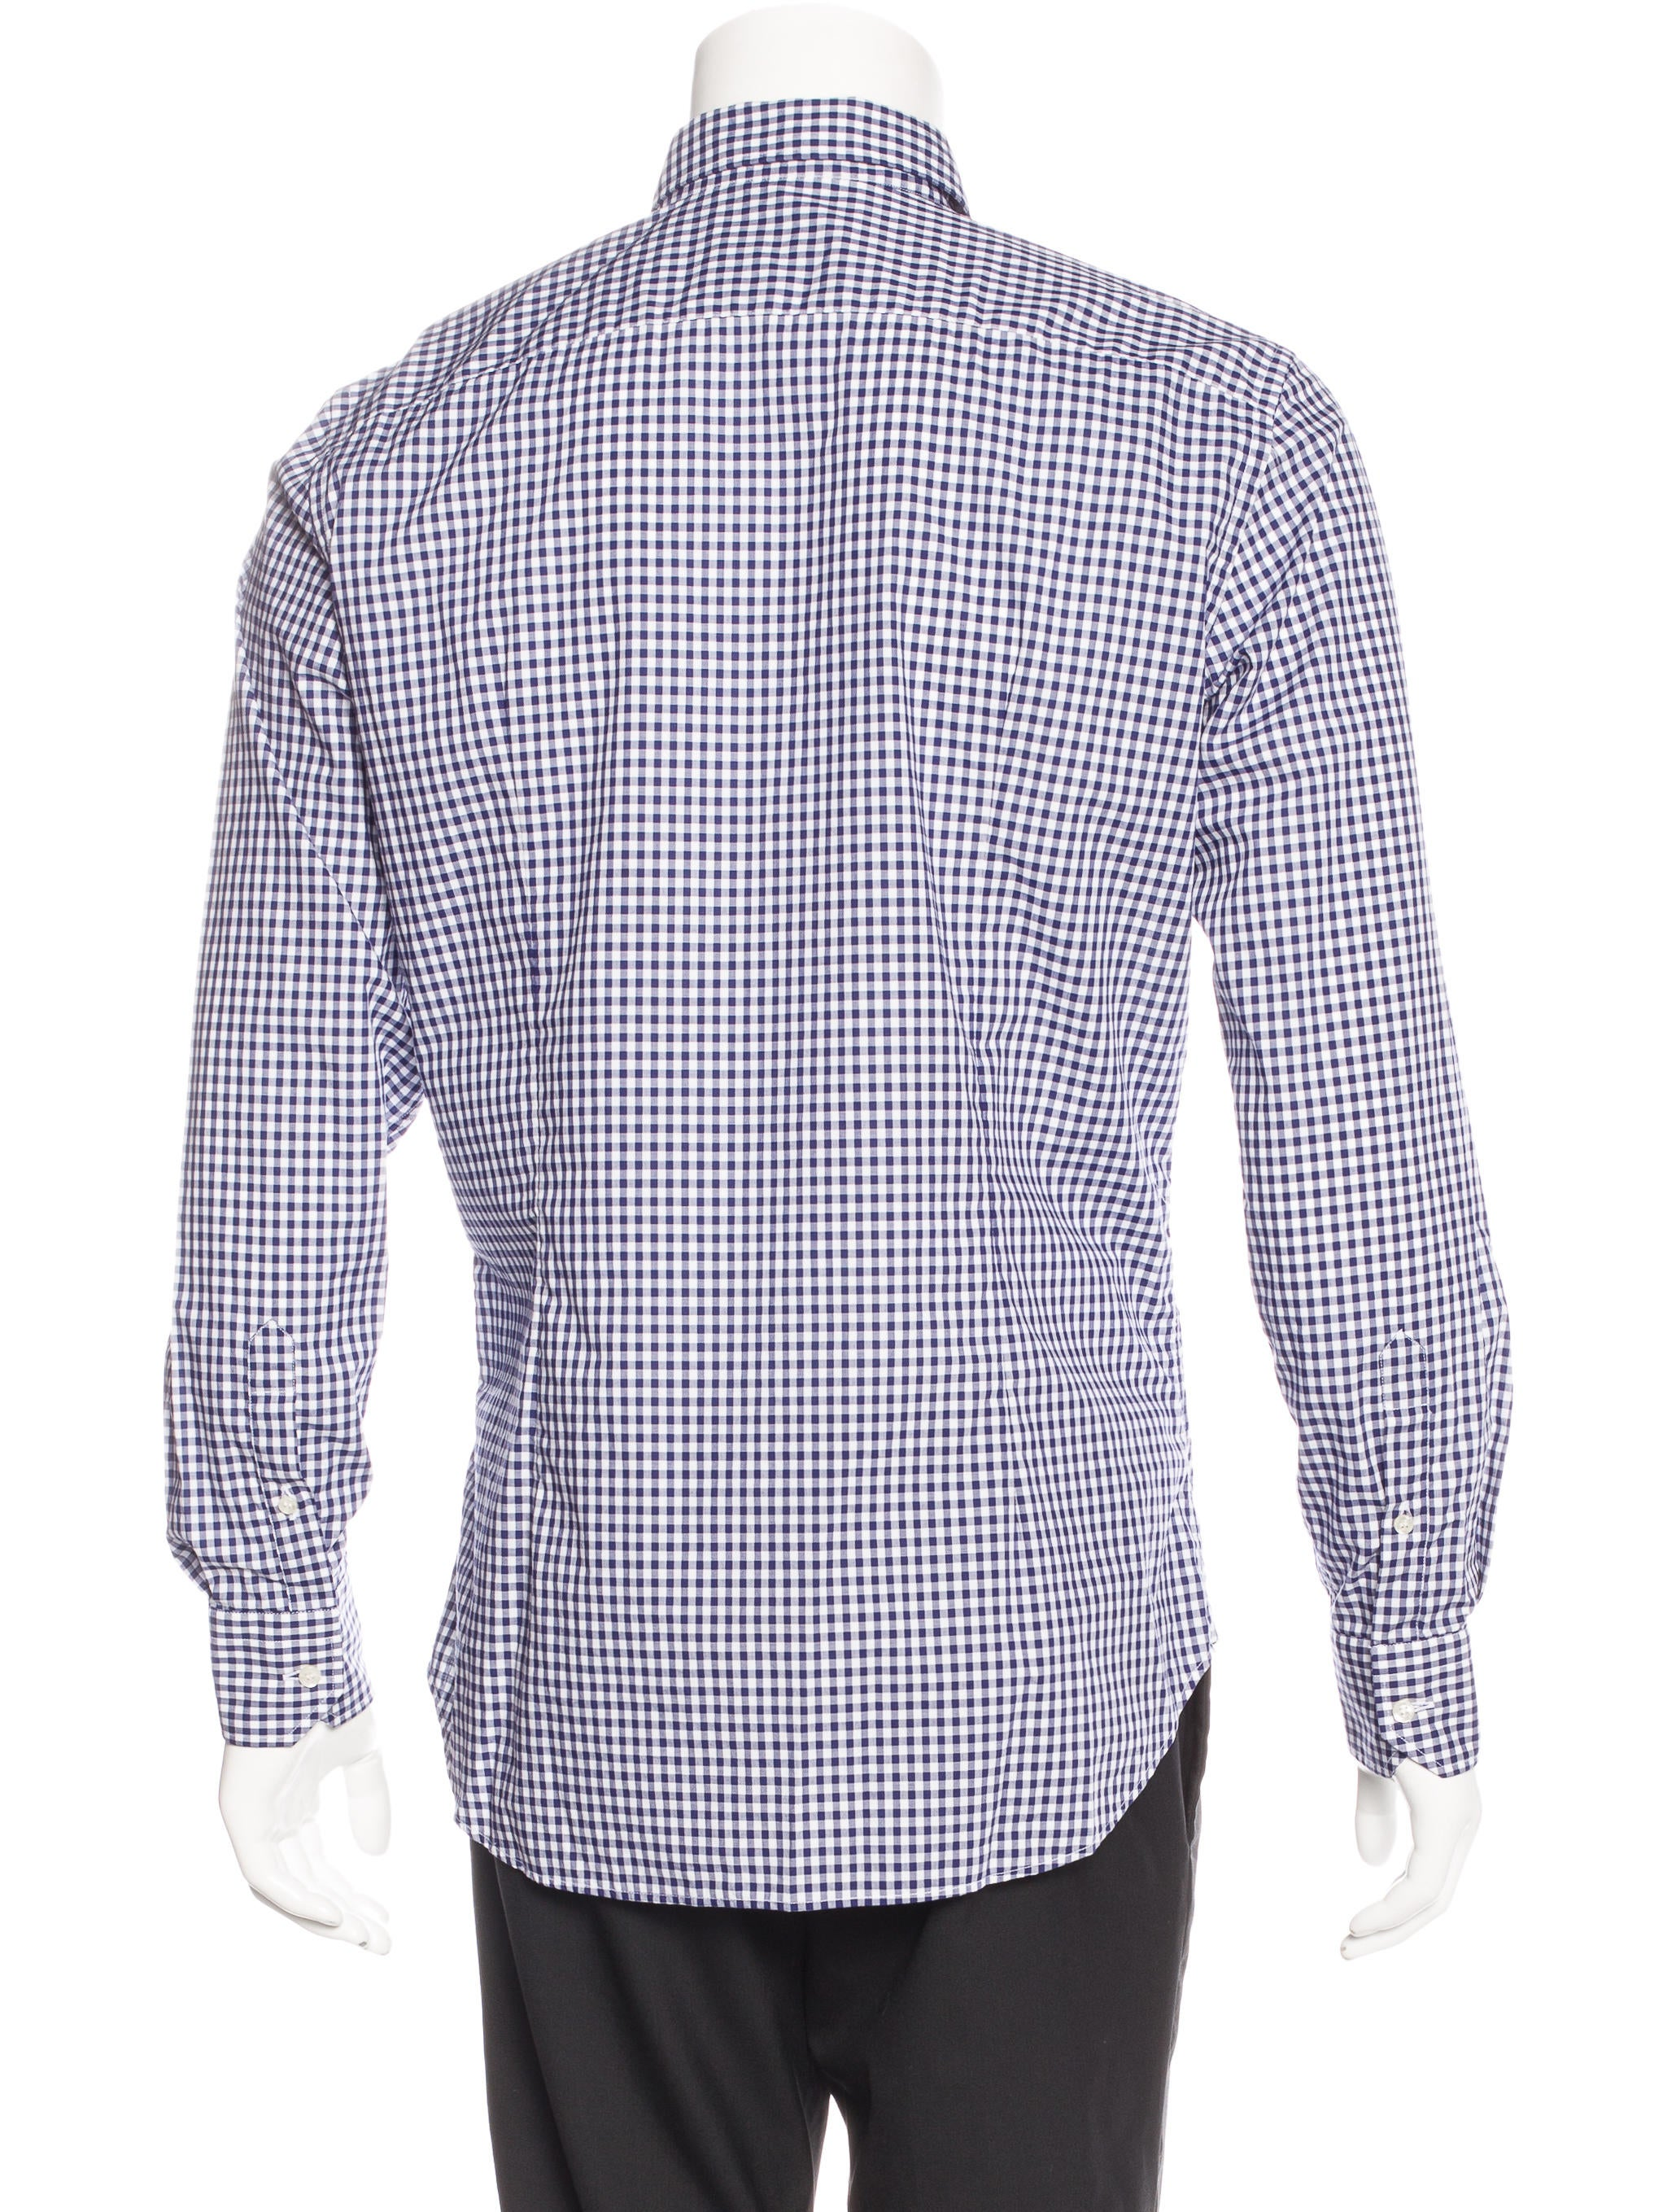 Etro gingham dress shirt clothing etr44634 the realreal for Men s red gingham dress shirt